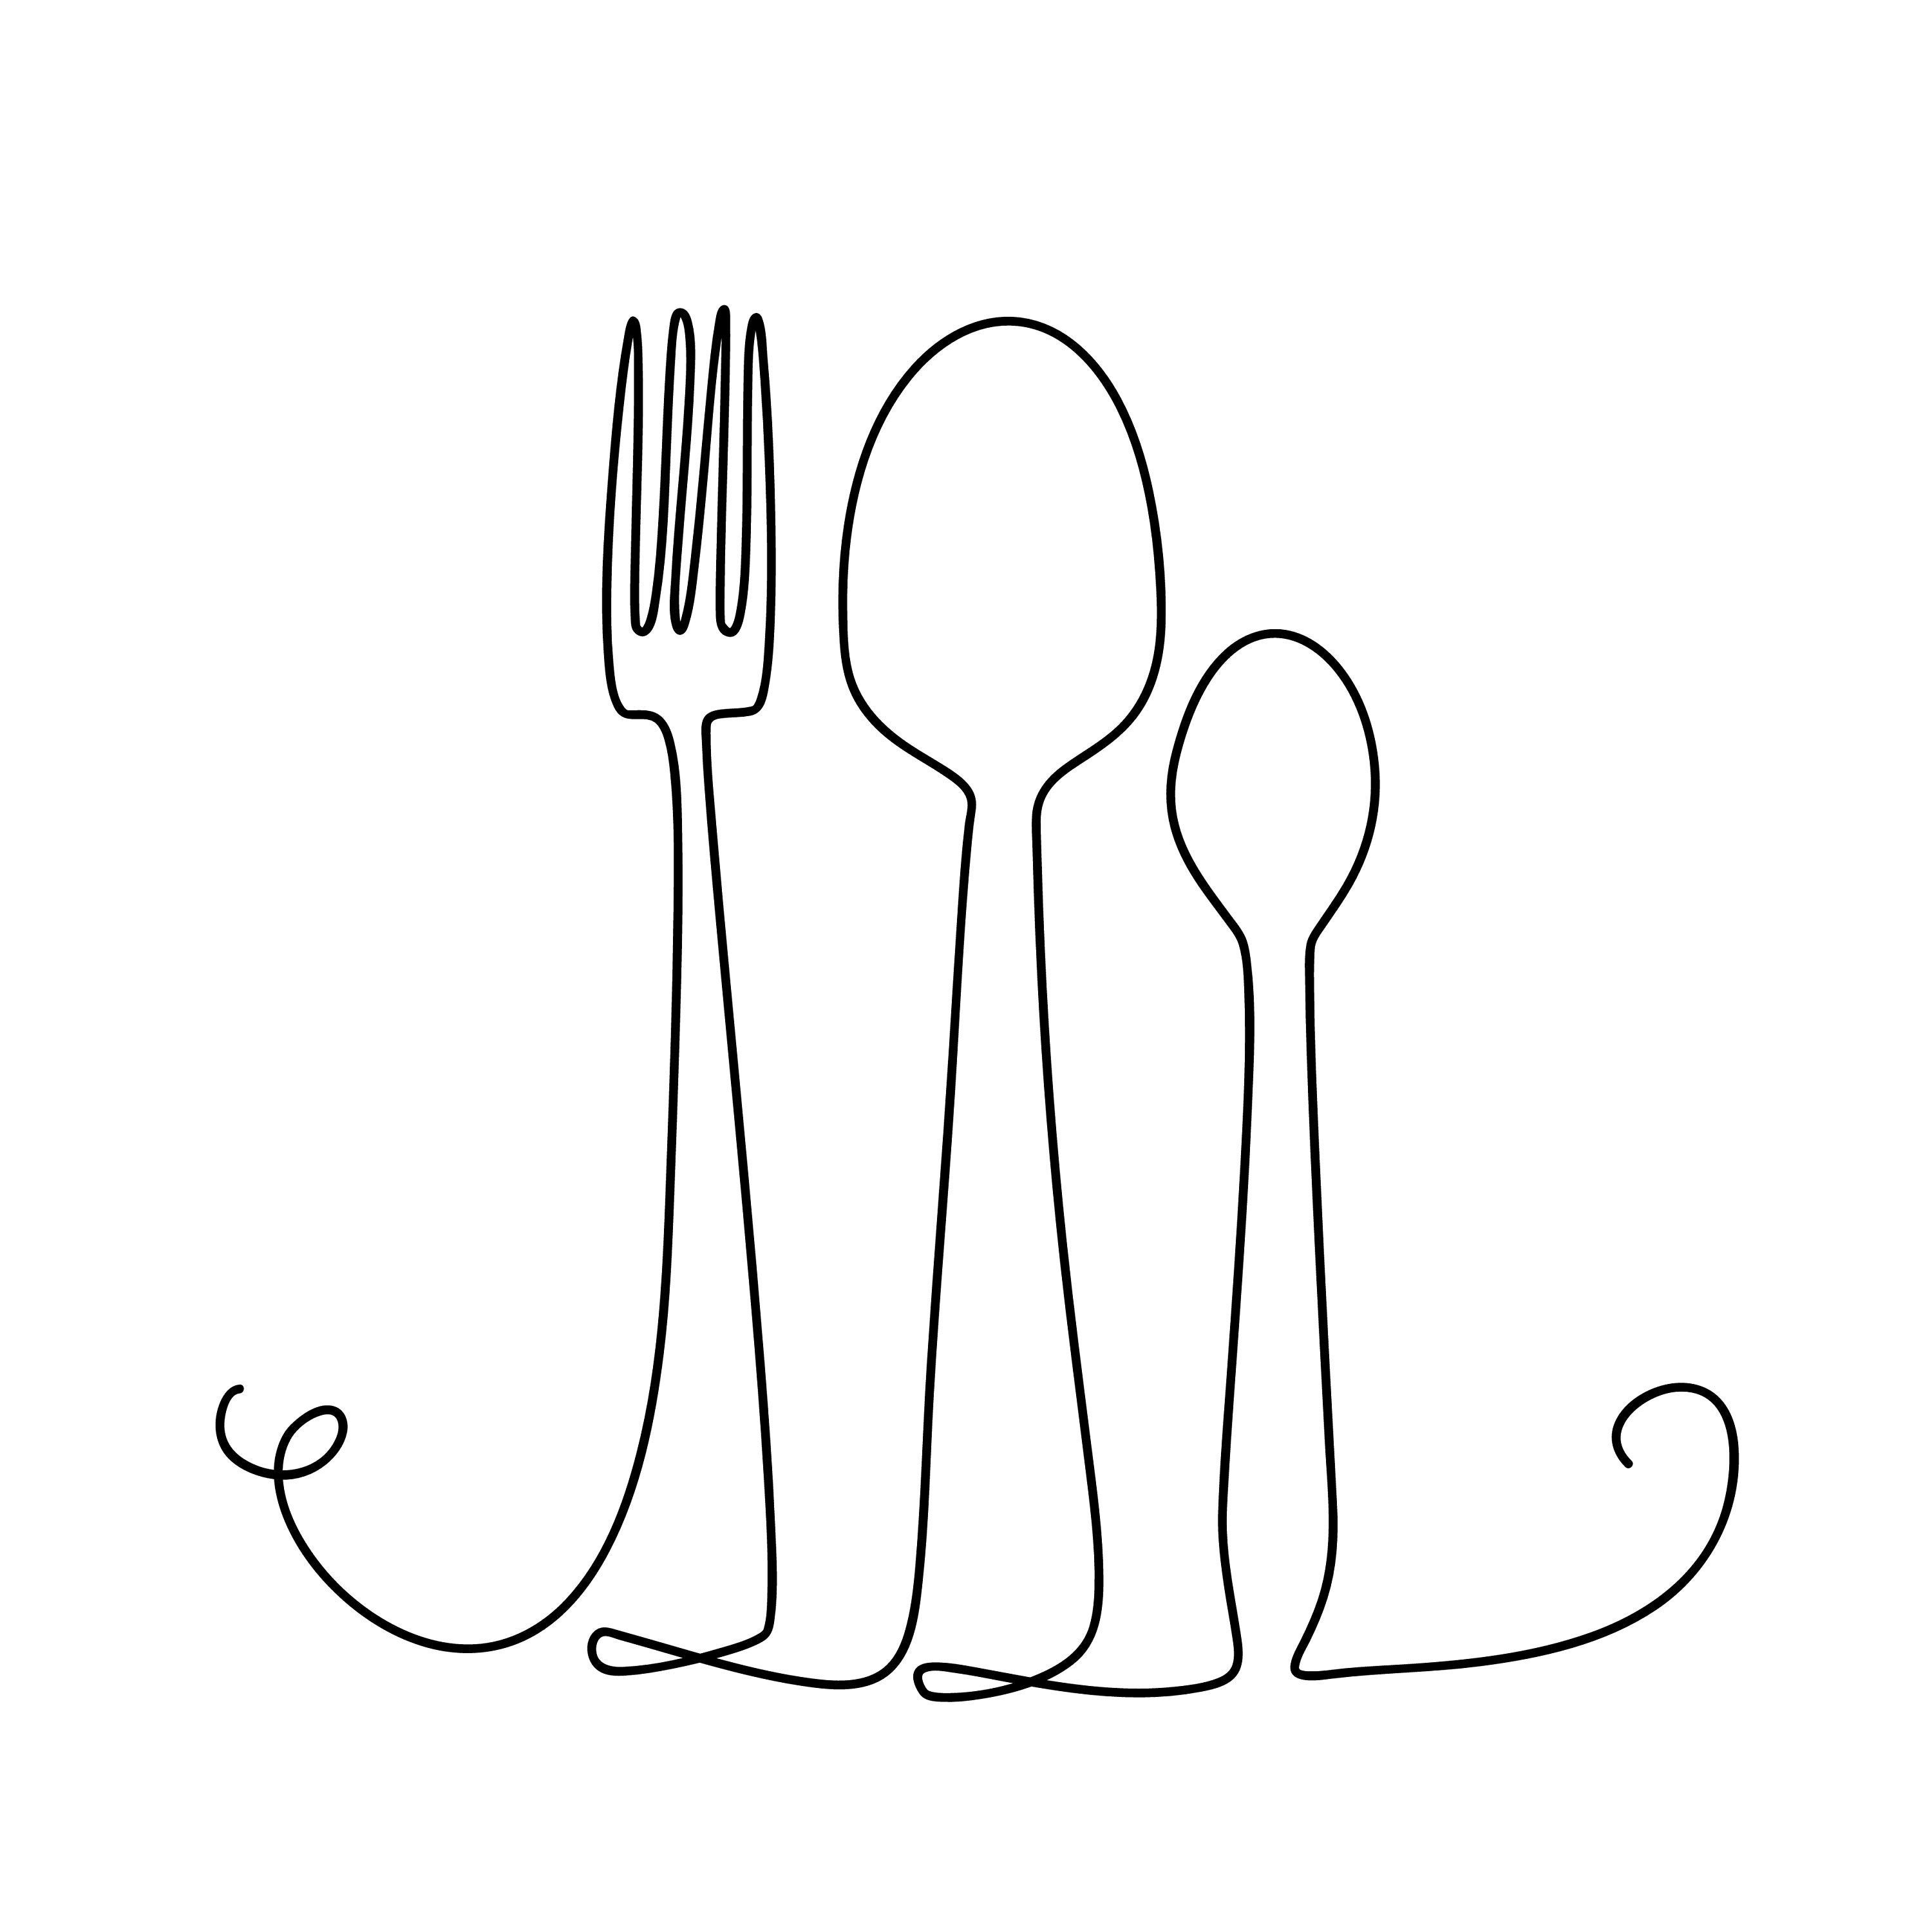 Fork And Spoon Continuous Thin Line Vector Illustration Etsy In 2021 Kitchen Icon Kitchen Art Simple Cafe